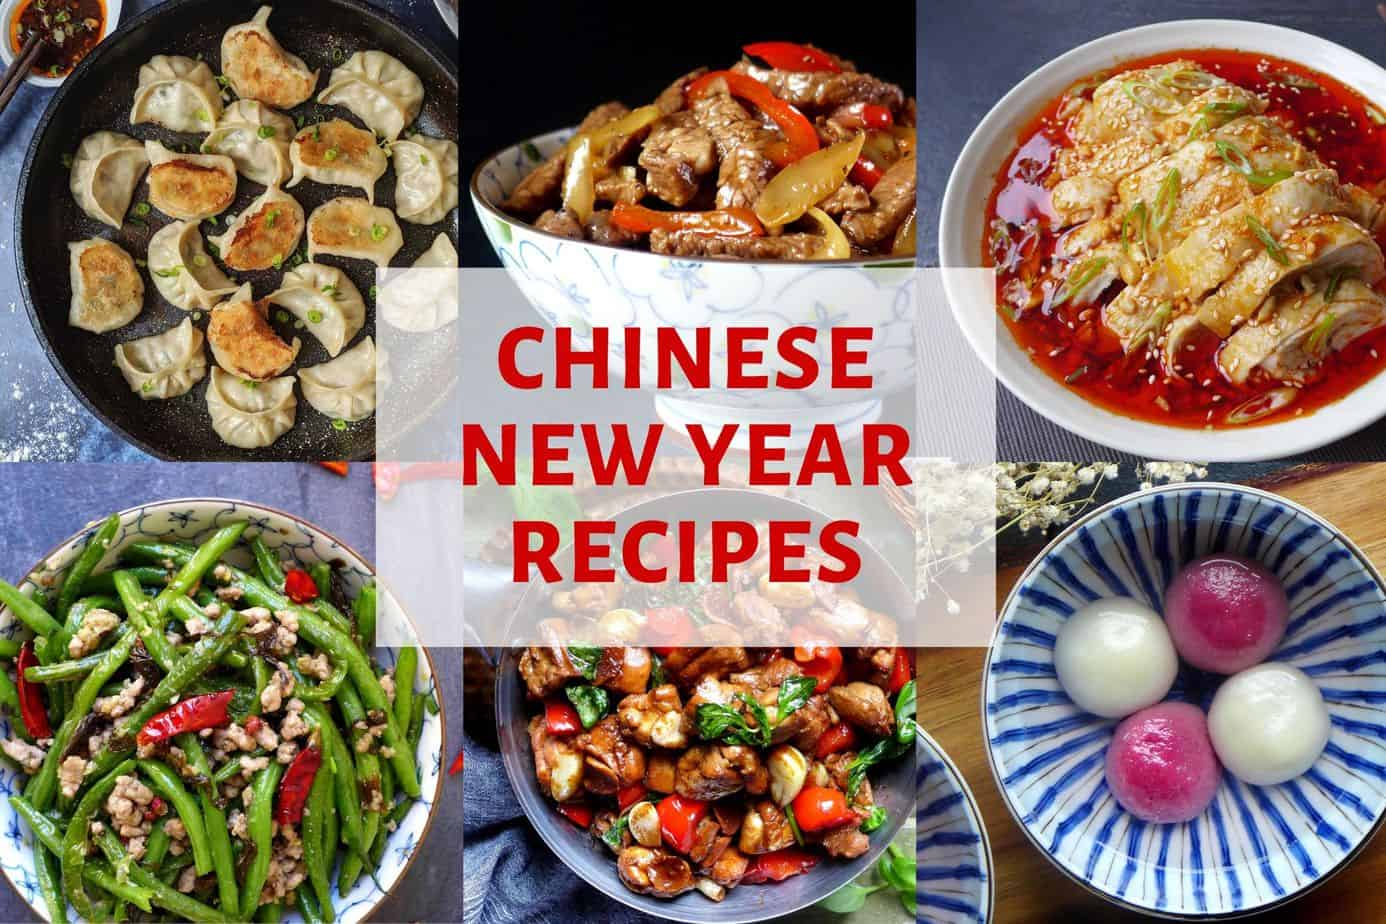 A collection of dishes for Chinese New Year